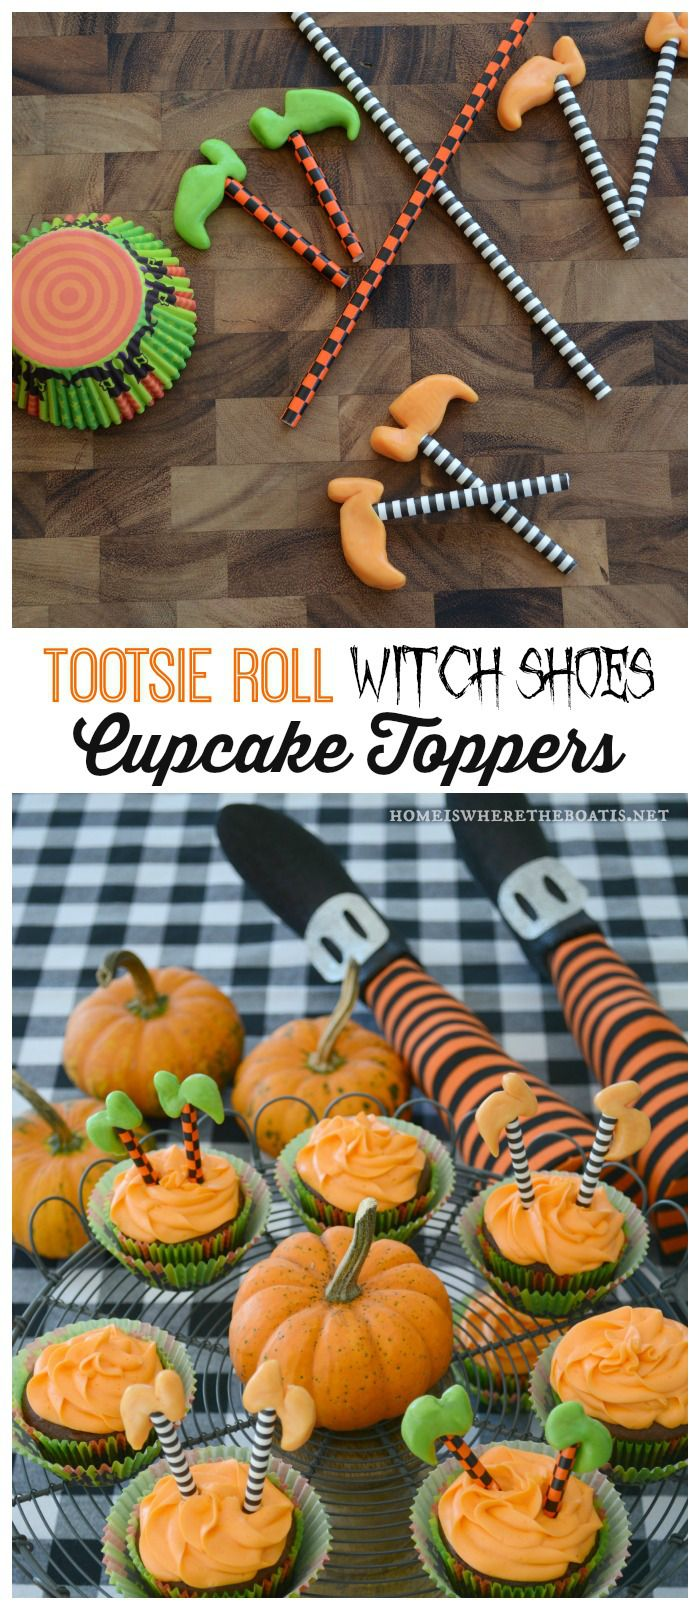 Tootsie Roll Witch Shoe Cupcake Toppers | homeiswheretheboatis.net #halloween